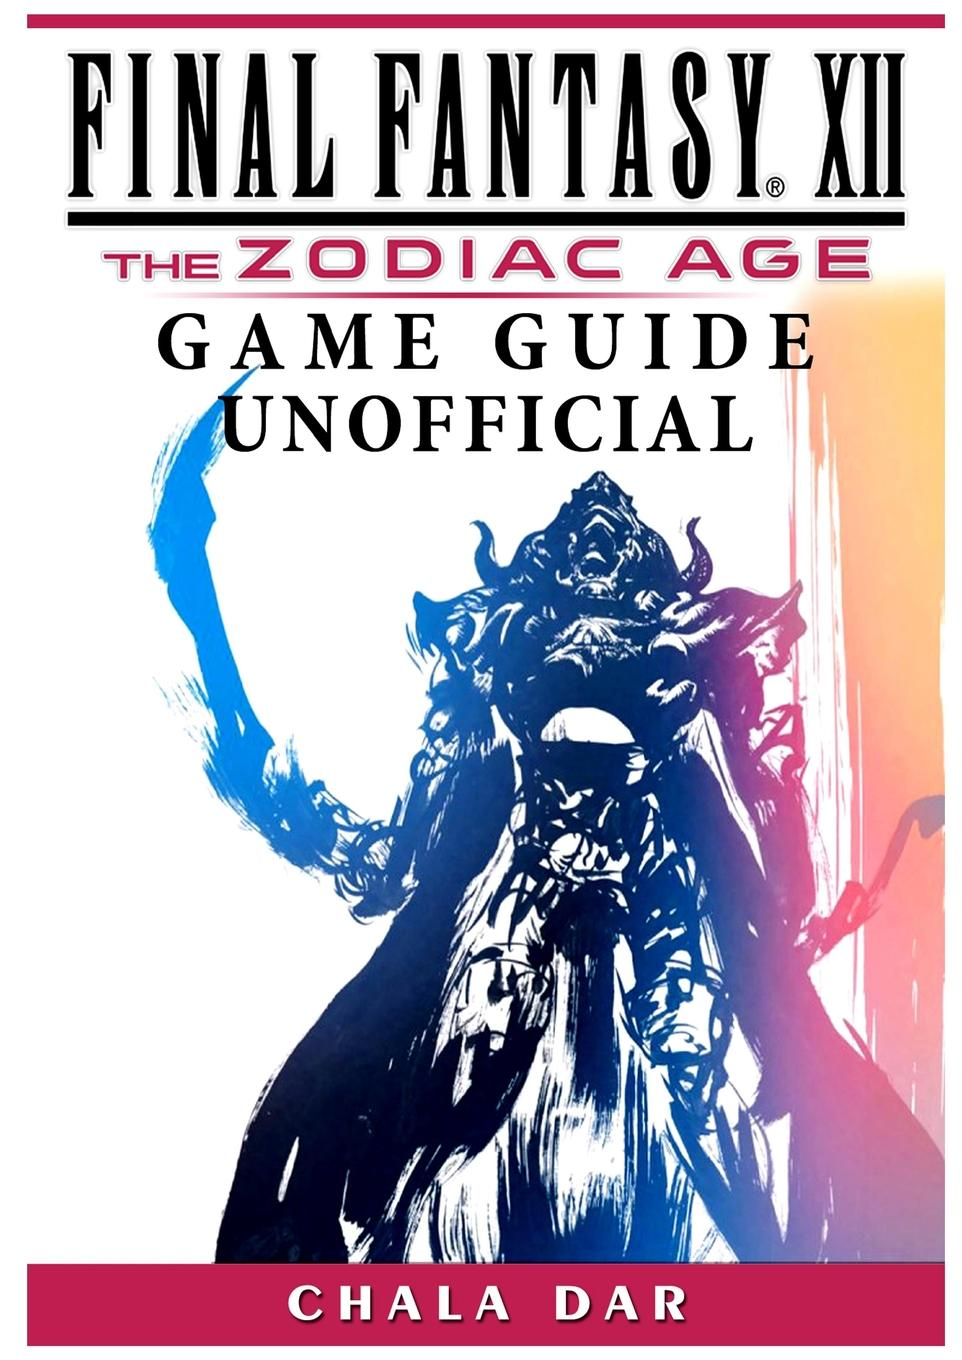 Chala Dar Final Fantasy XII The Zodiac Age Game Guide Unofficial final fantasy xii the zodiac age ограниченное издание steelbook ps4